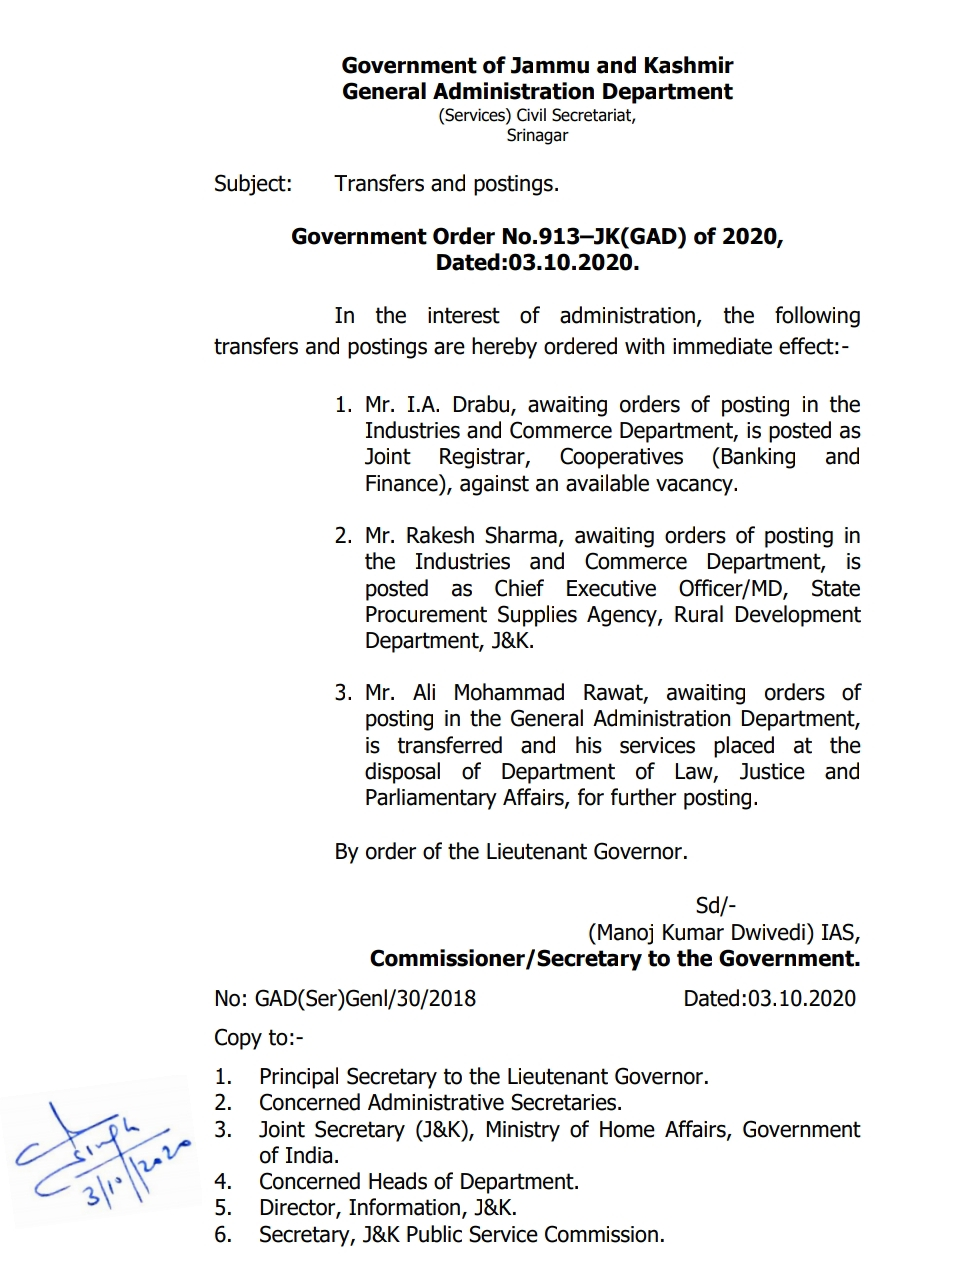 Jammu & Kashmir: Transfers and postings in administration 2